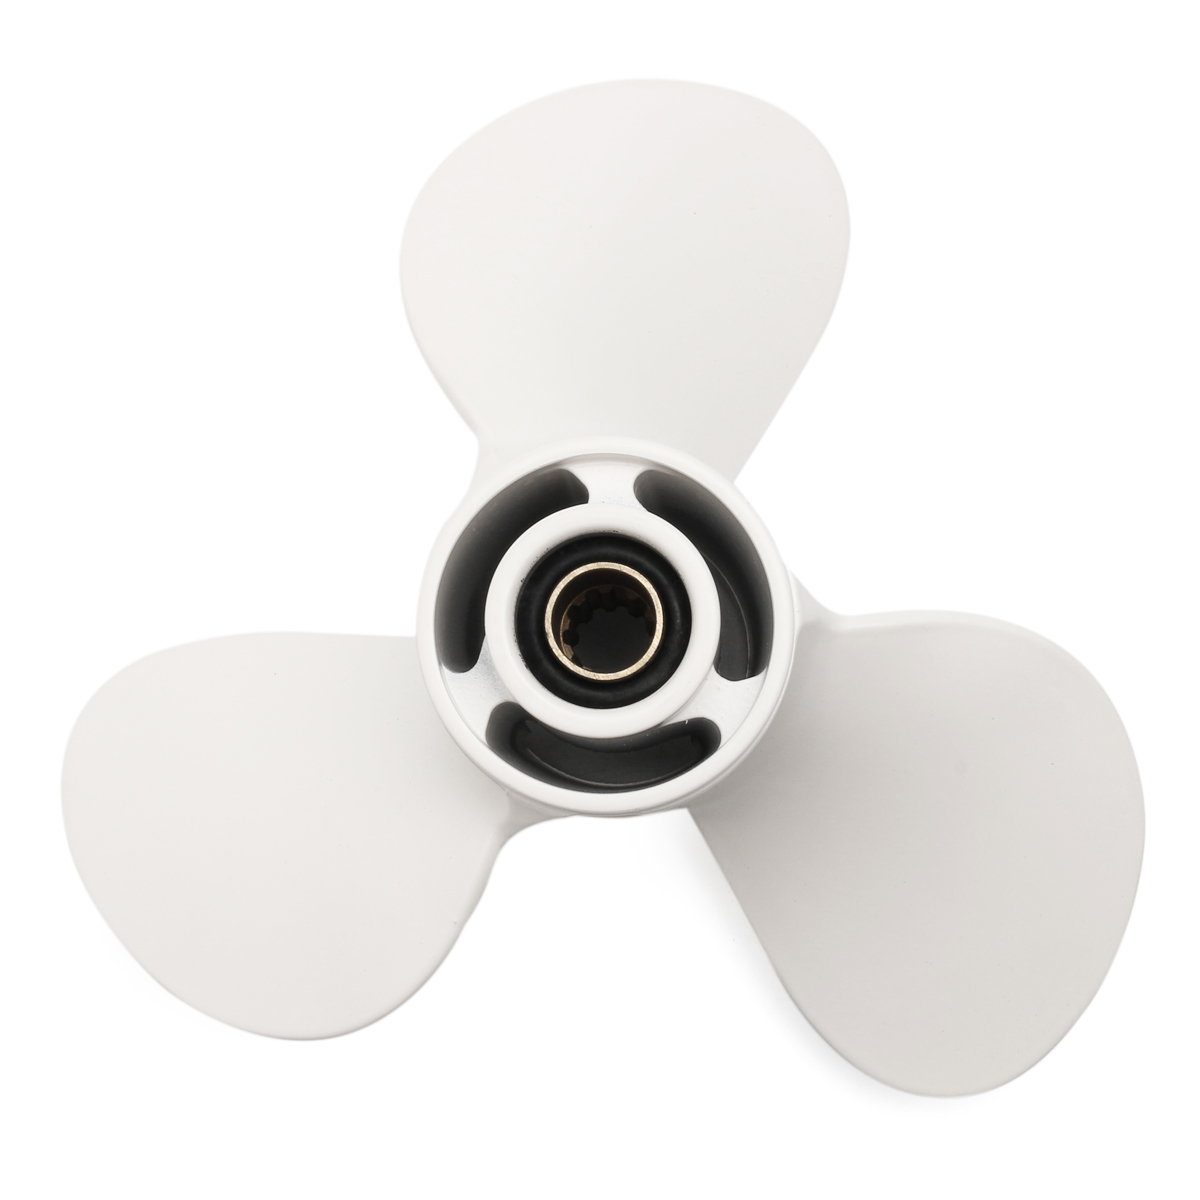 9 7/8X10 1/2-F Boat Outboard Propeller For Yamaha 20-30HP Aluminum 10 Spline Tooths Diameter 72mm White 3 Blades